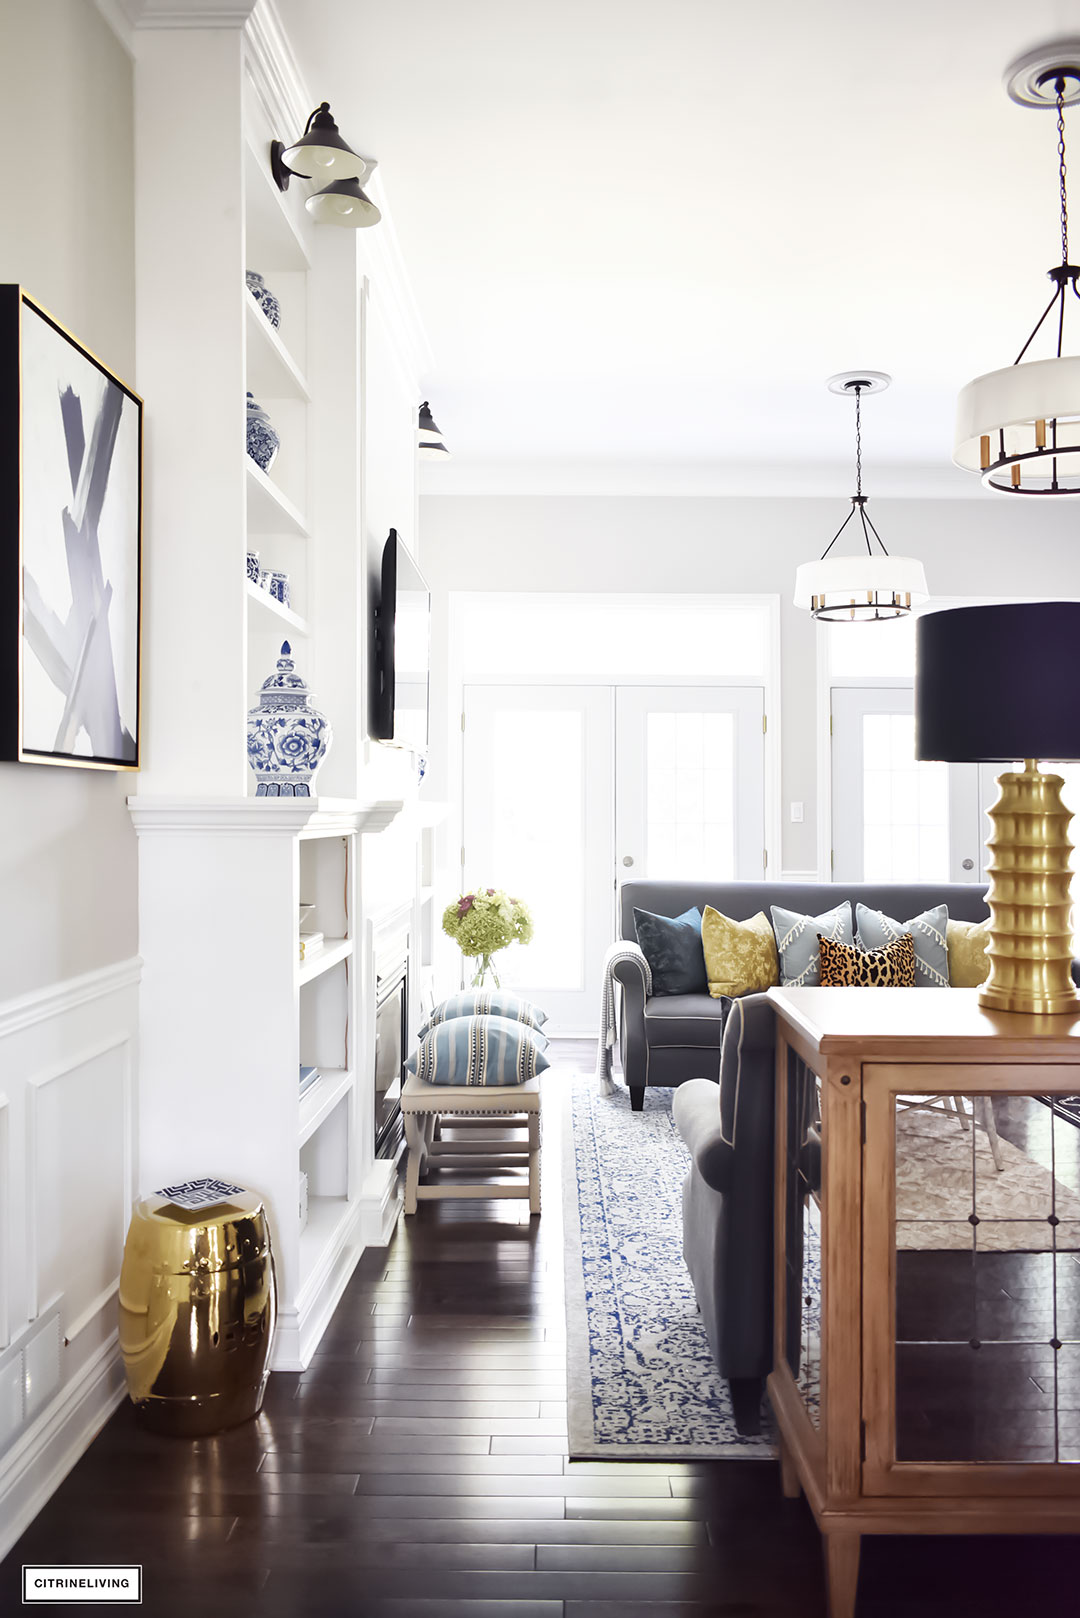 Fall Home Tour featuring this elegant living room with sophisticated navy and gold accents, drum shade chandeliers, gray sofas and blue and white accessories. Blue vintage style rug.